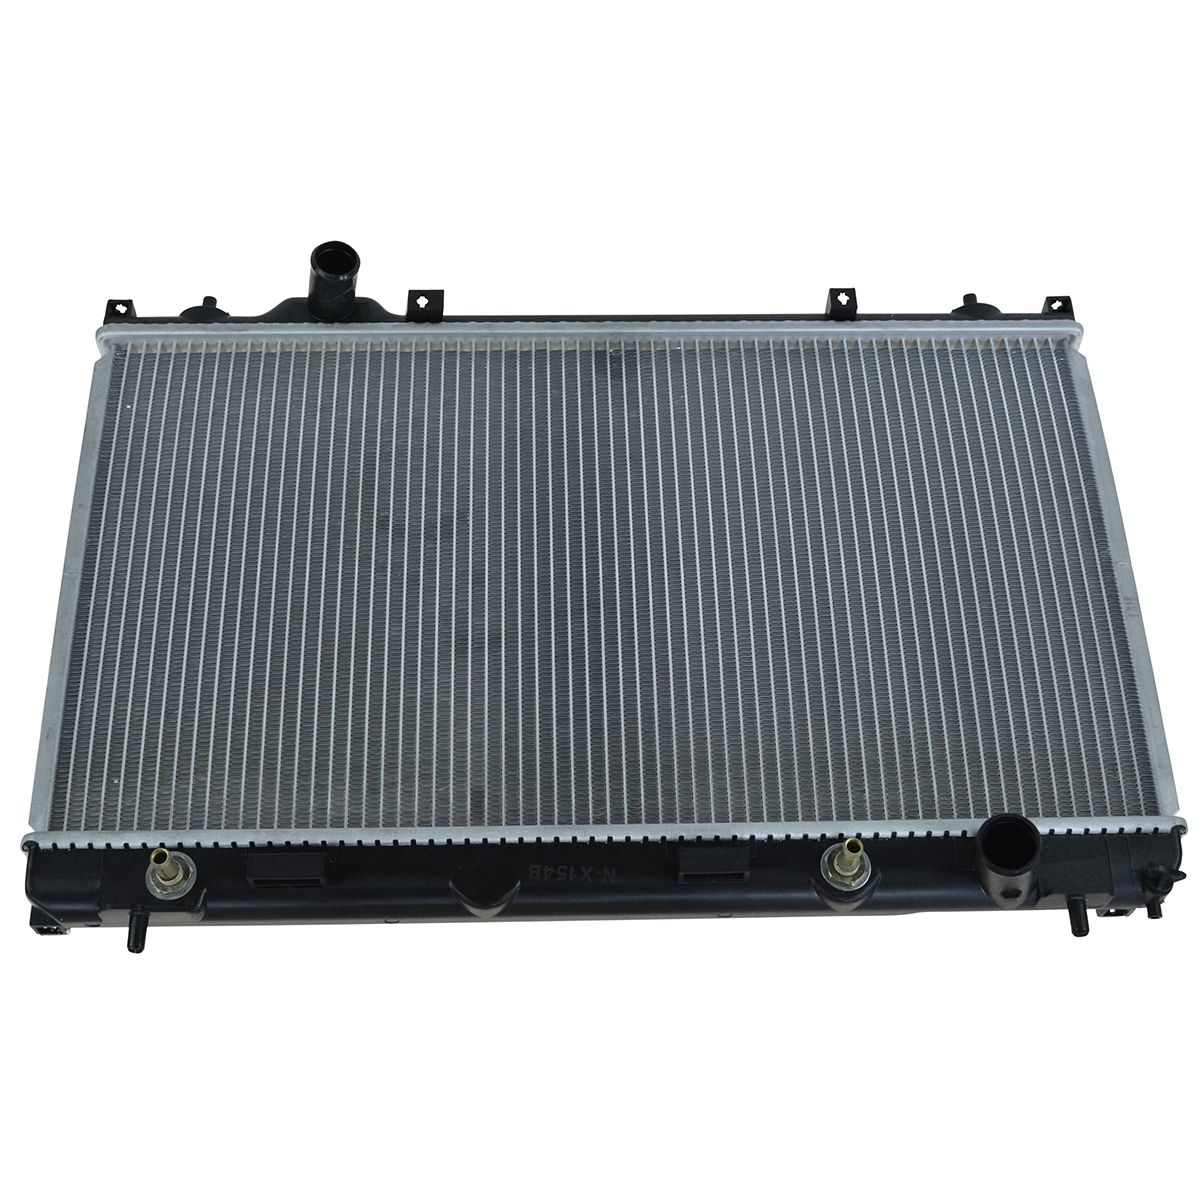 Details about Radiator NEW for Plymouth Dodge Neon 2.0L